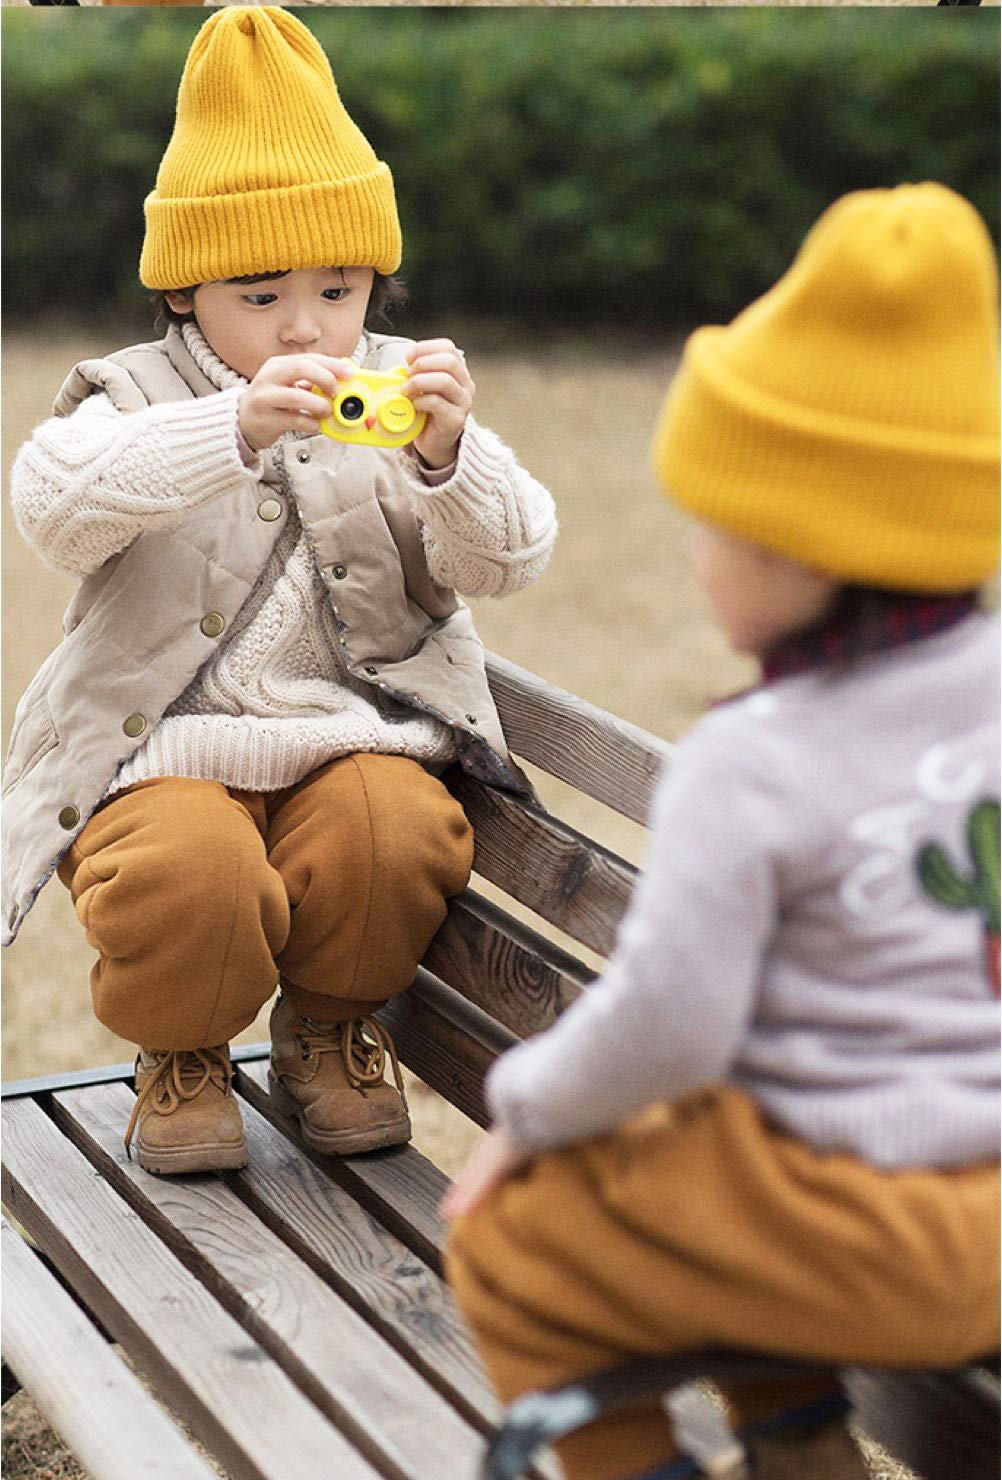 ISHOWStore Mini WiFi Camera for Children HD 8MP External SD Card Digital Video Shakeproof Camcorder for Children with Free 16G Memory Card 82x58x31mm (Yellow Owl) by ISHOWStore (Image #6)